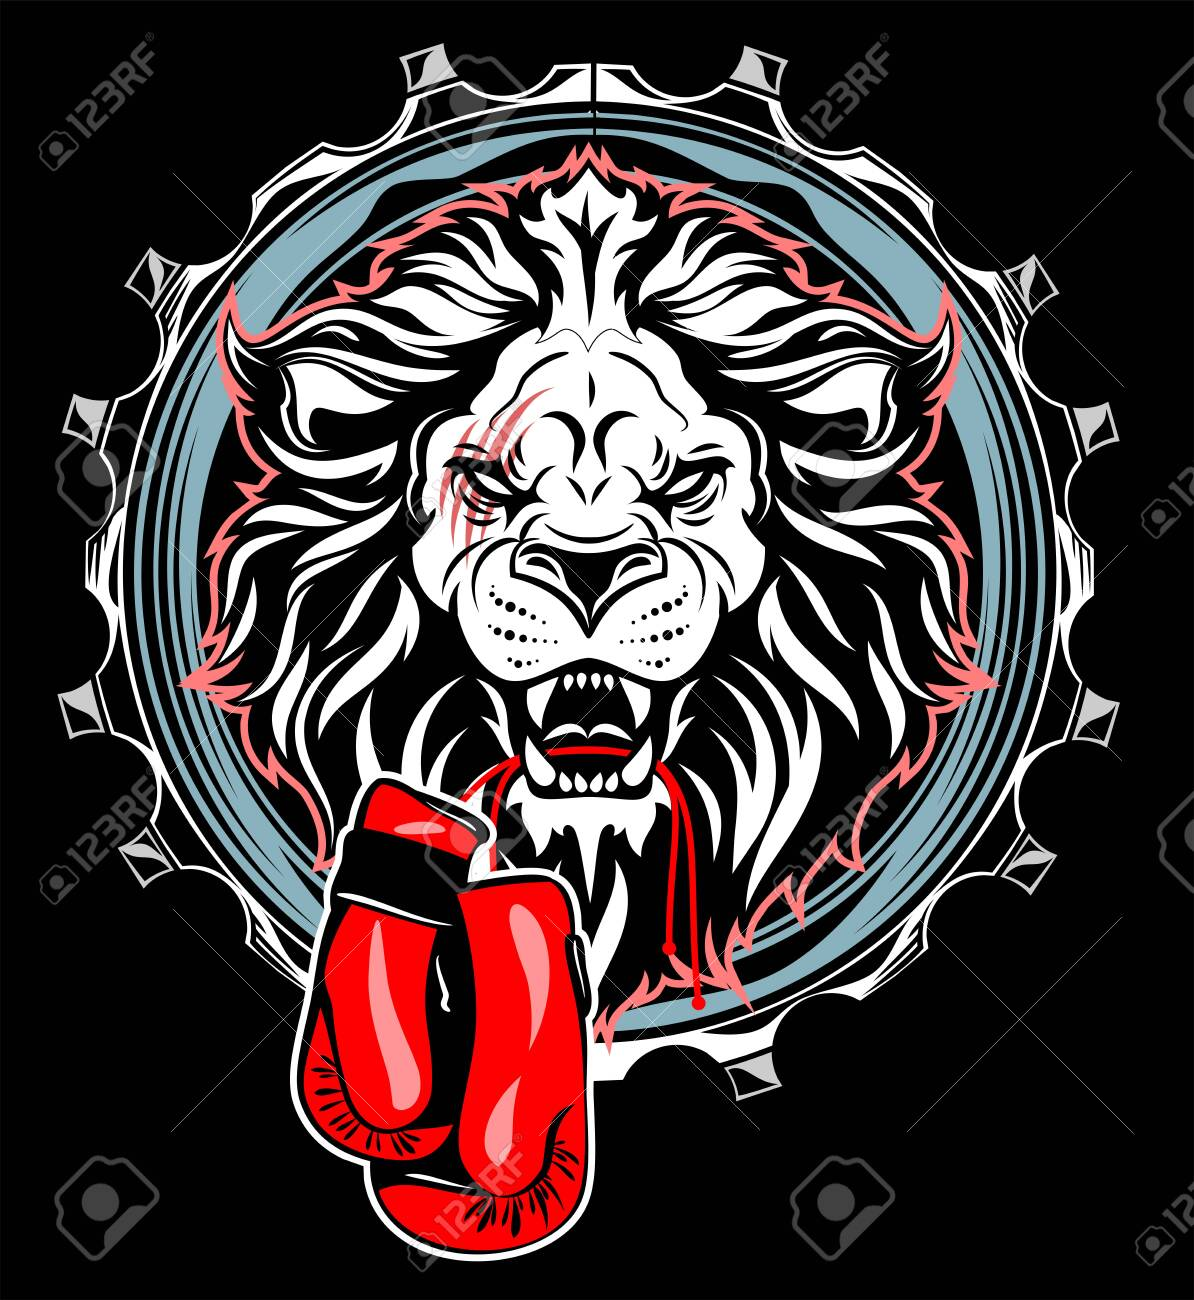 Portrait of a lion with boxing gloves in Steel, metal hoop, circle, frame - 130864041